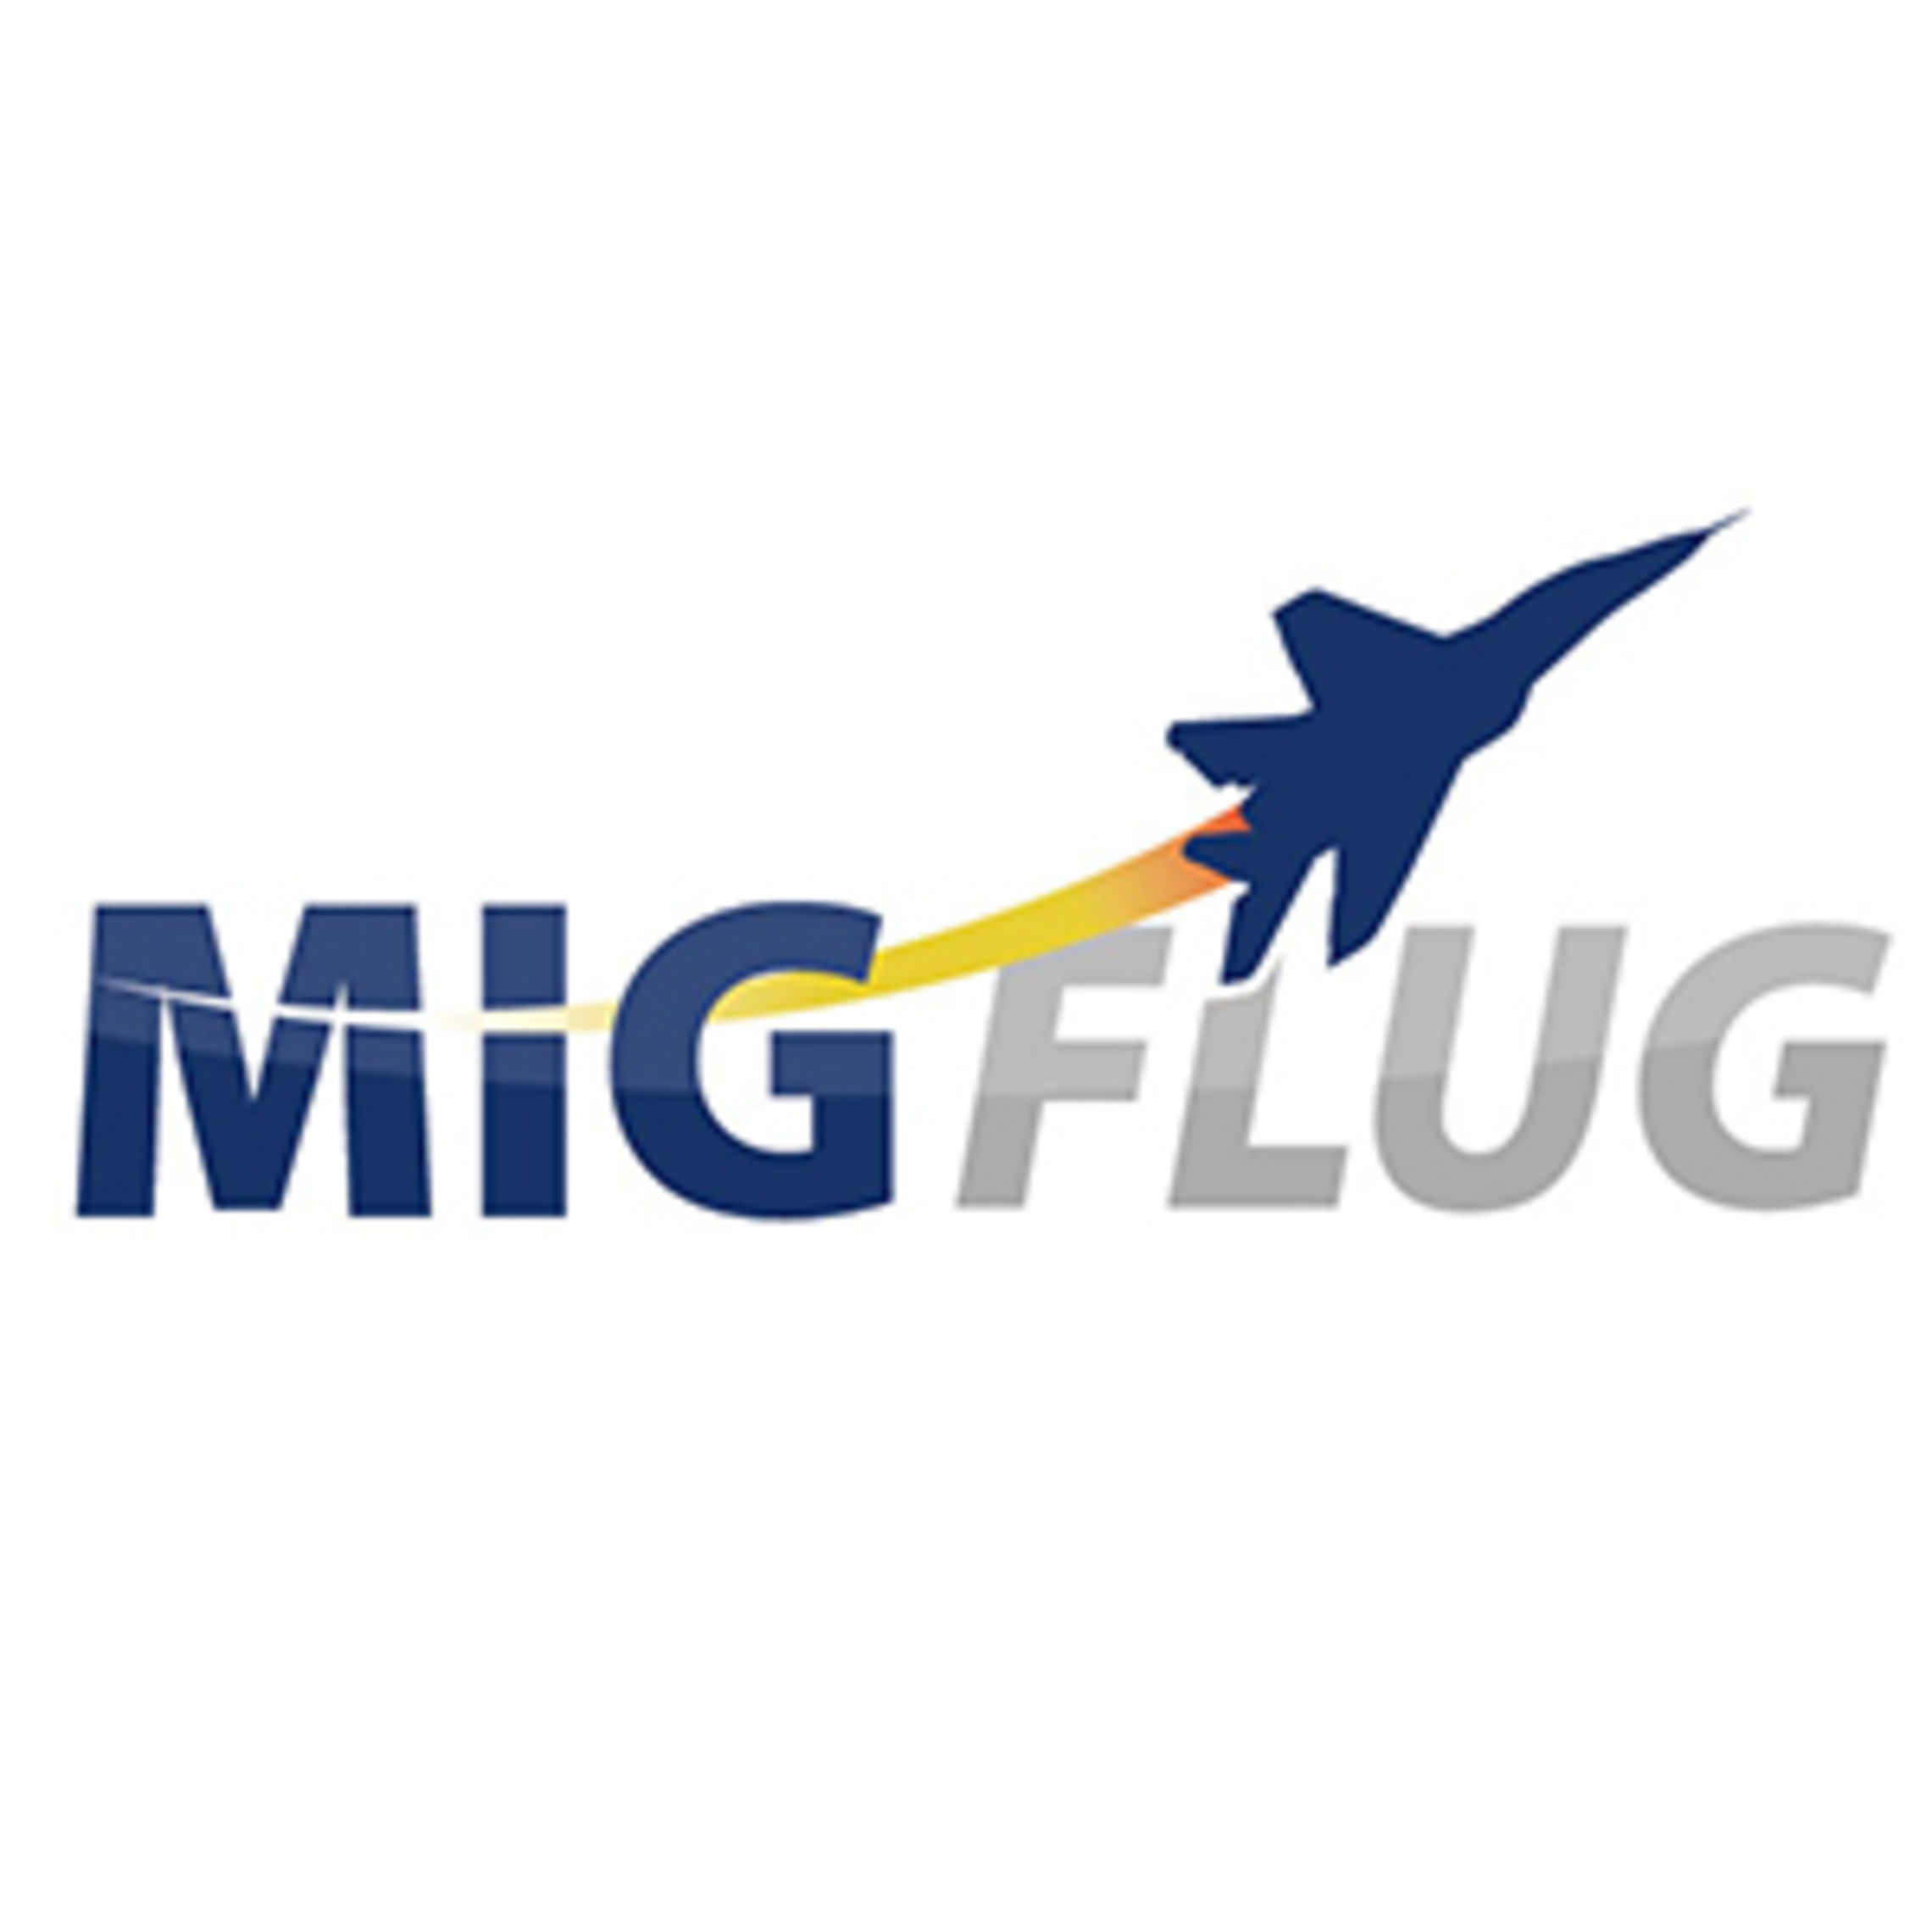 migflug jet fighter- company logo